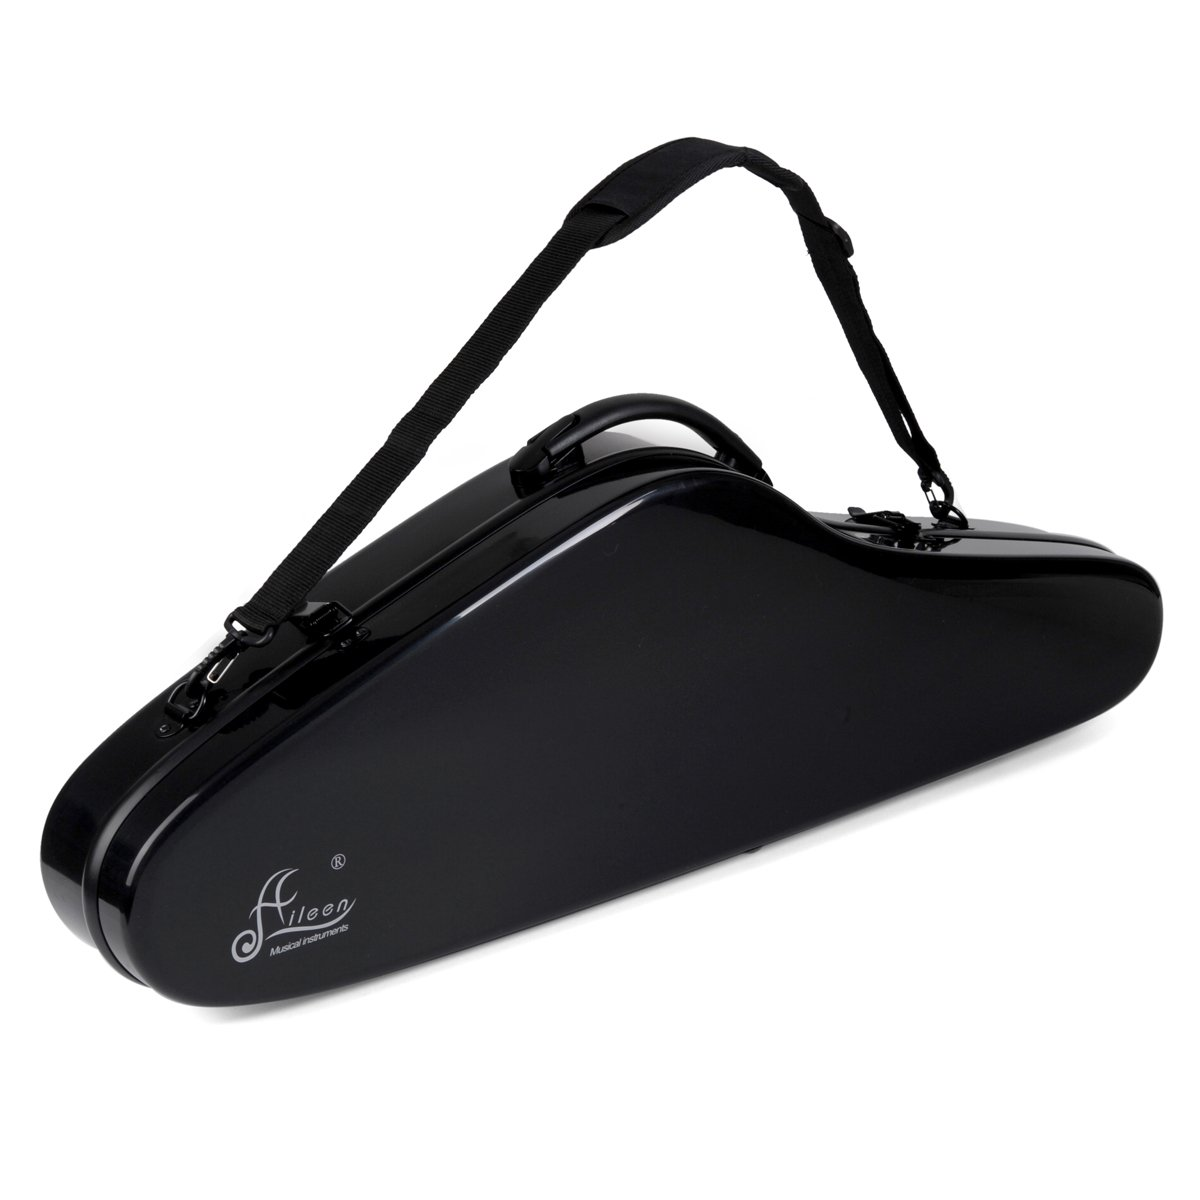 Aileen 4/4 Full Size Luxury Violin Hard Case with Hygrometer Suspension, 4 Colors, ''Air'' Series (Black)